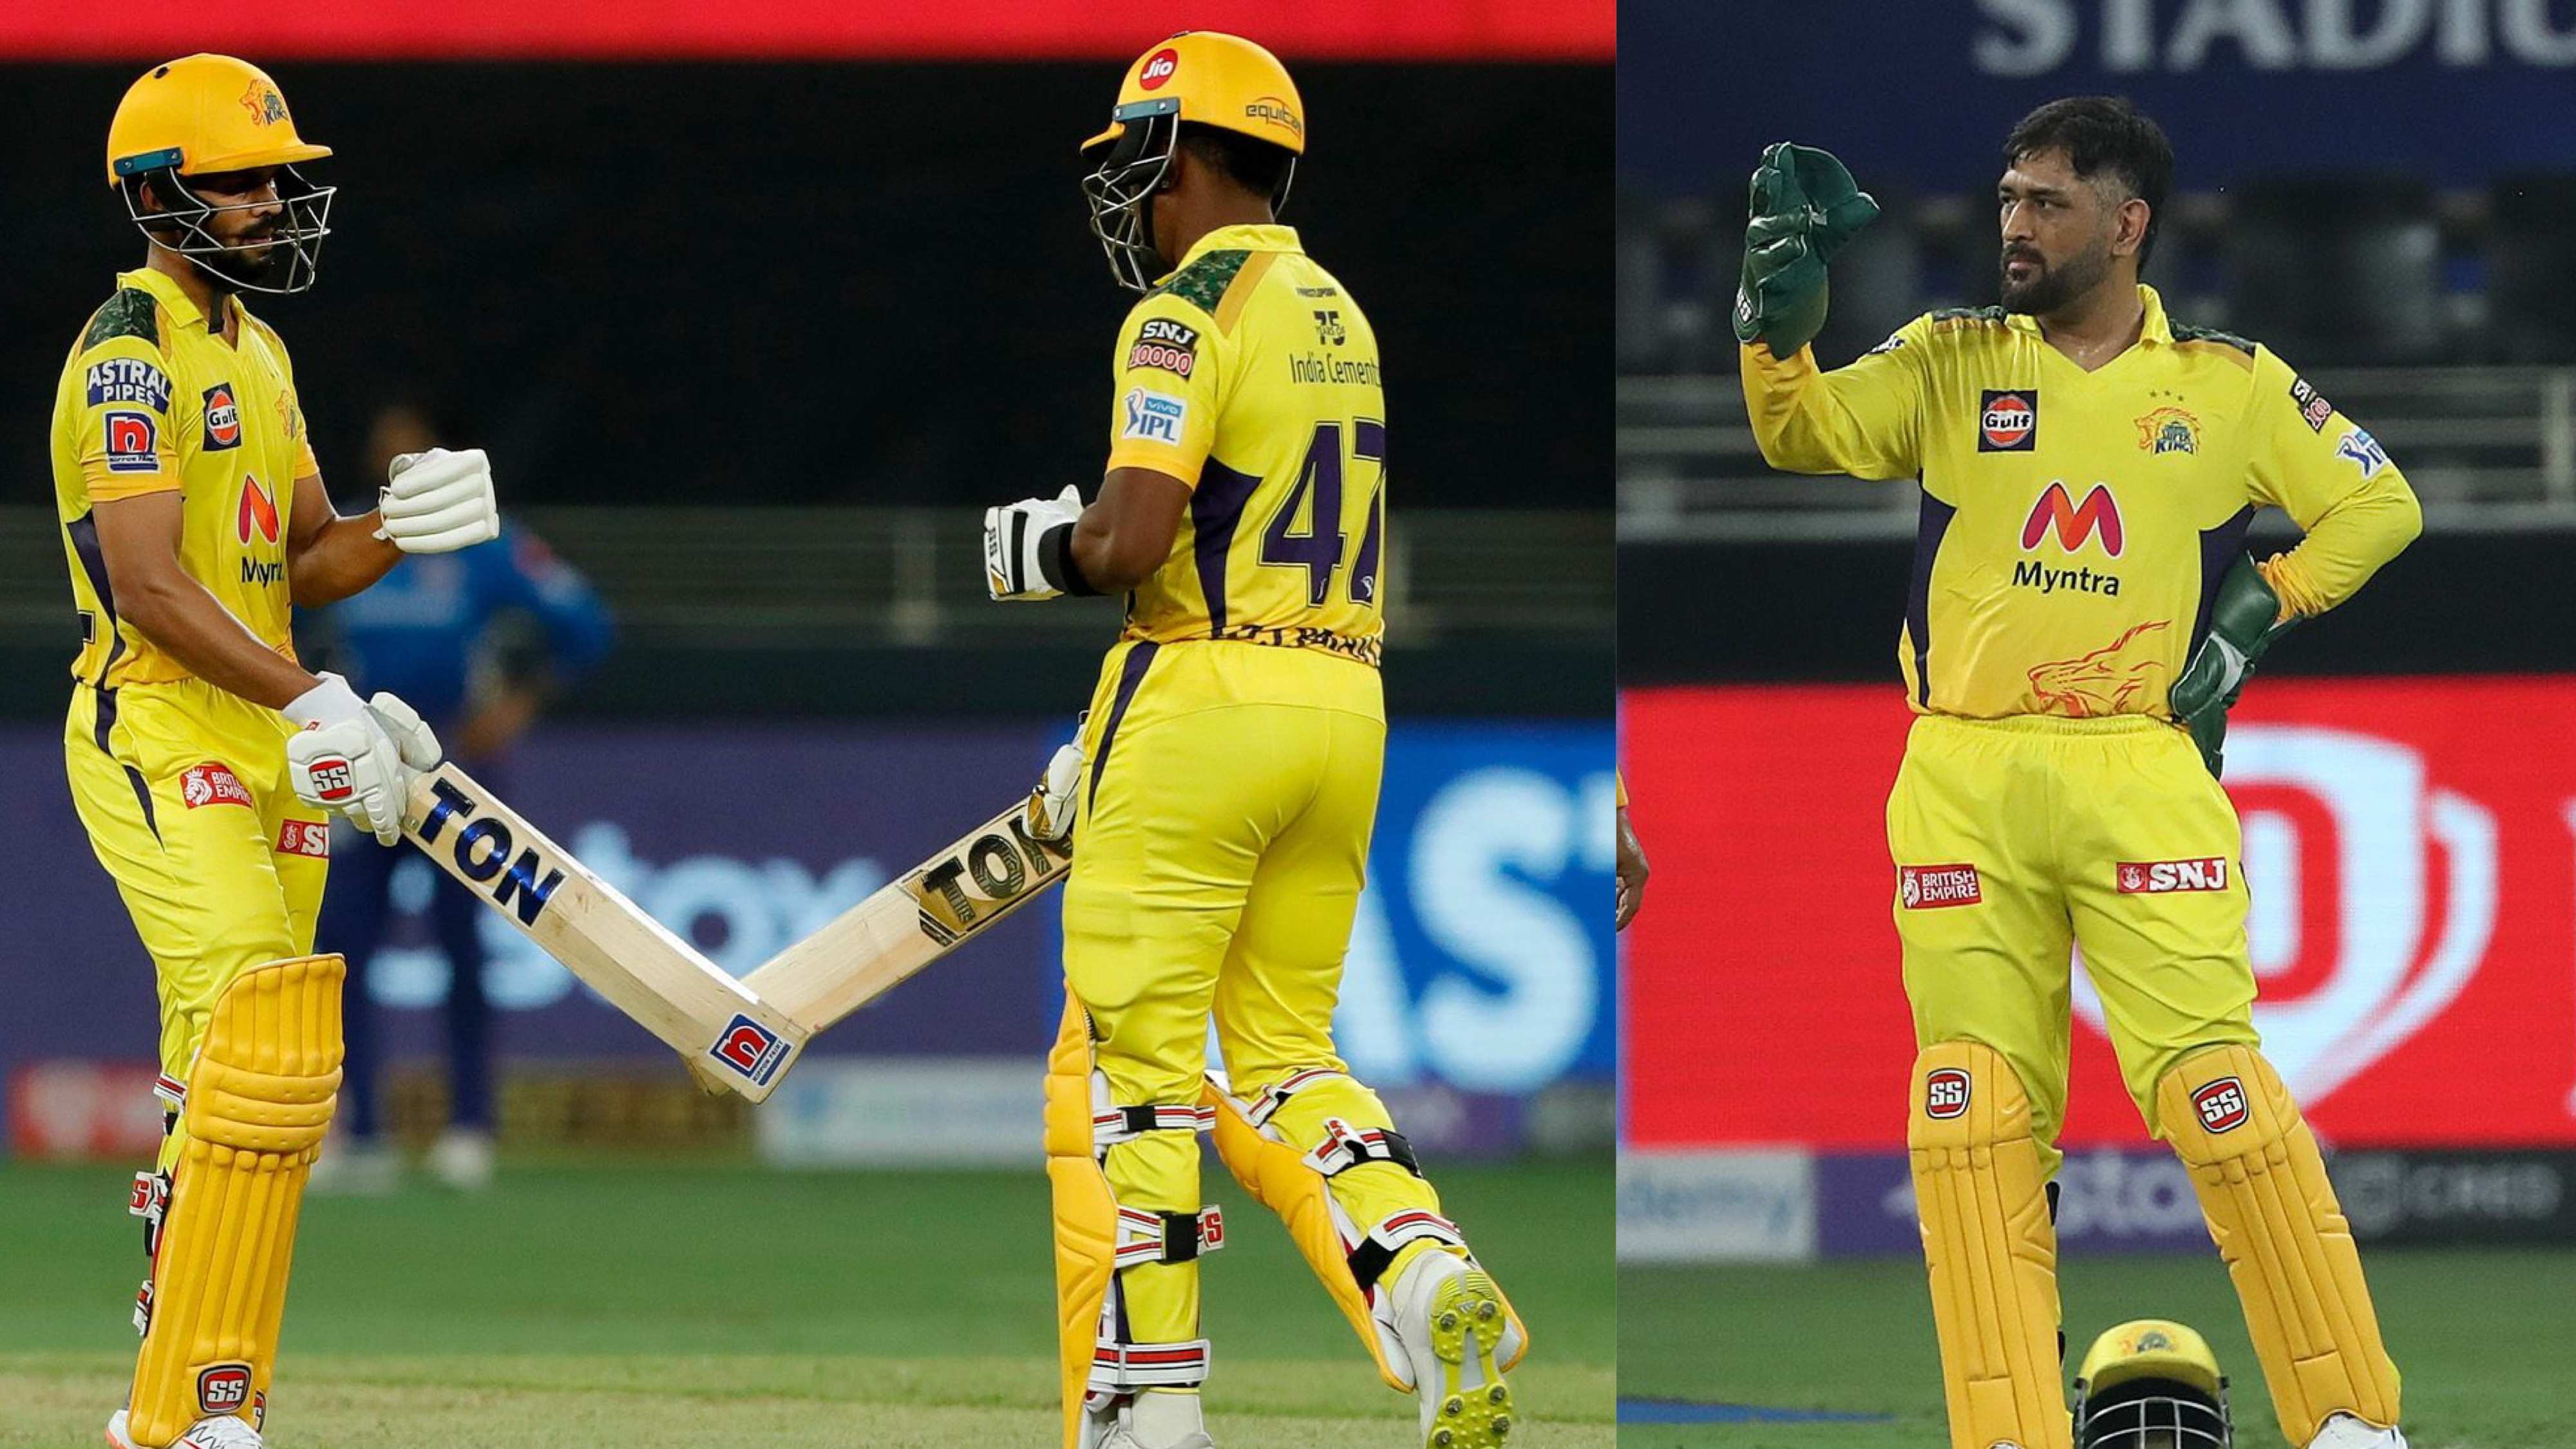 """IPL 2021: """"Ruturaj and Bravo got us more than what we expected"""" - MS Dhoni after CSK's win over MI"""